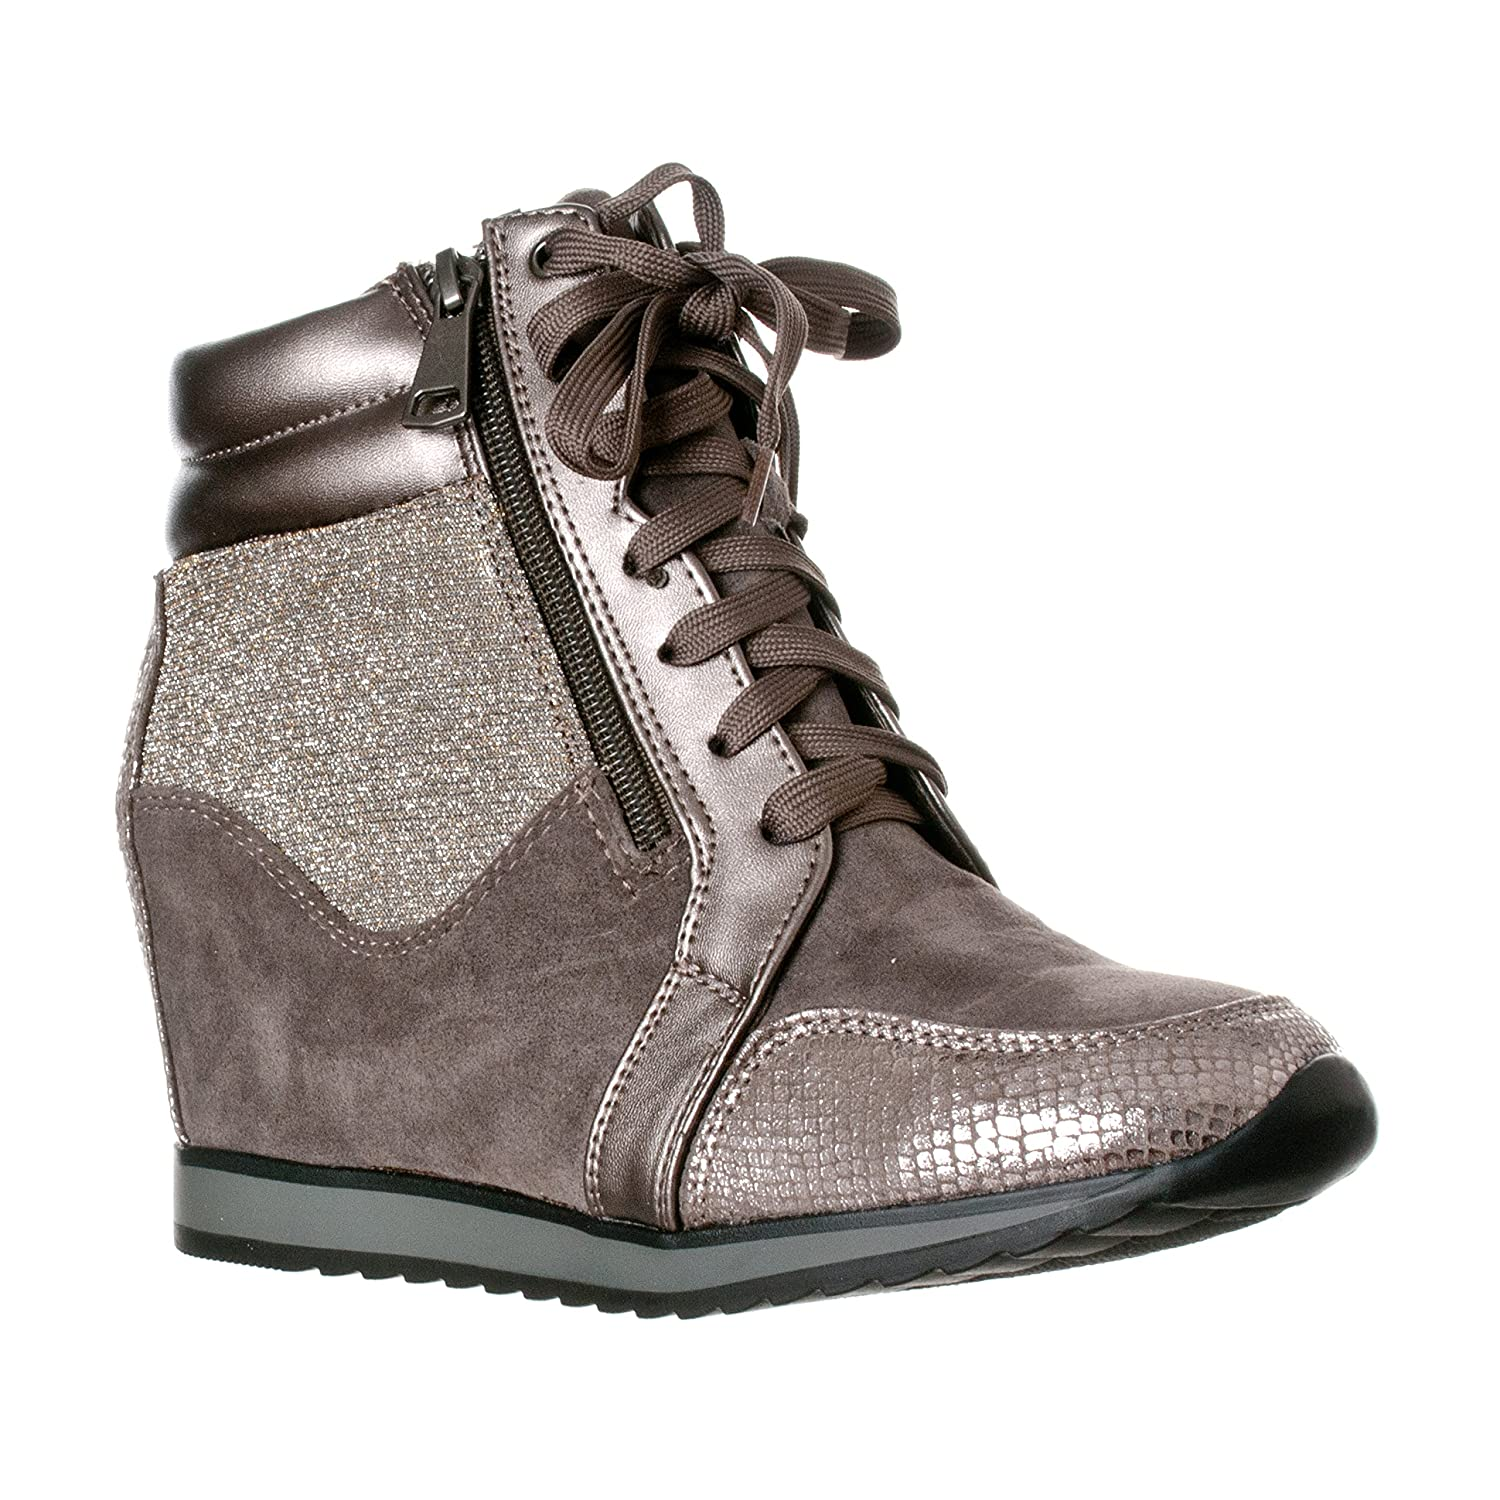 Forever Link Women's Shea-42 Fashion Wedge Sneakers B01DOBCLFS 8.5 B(M) US|Grey